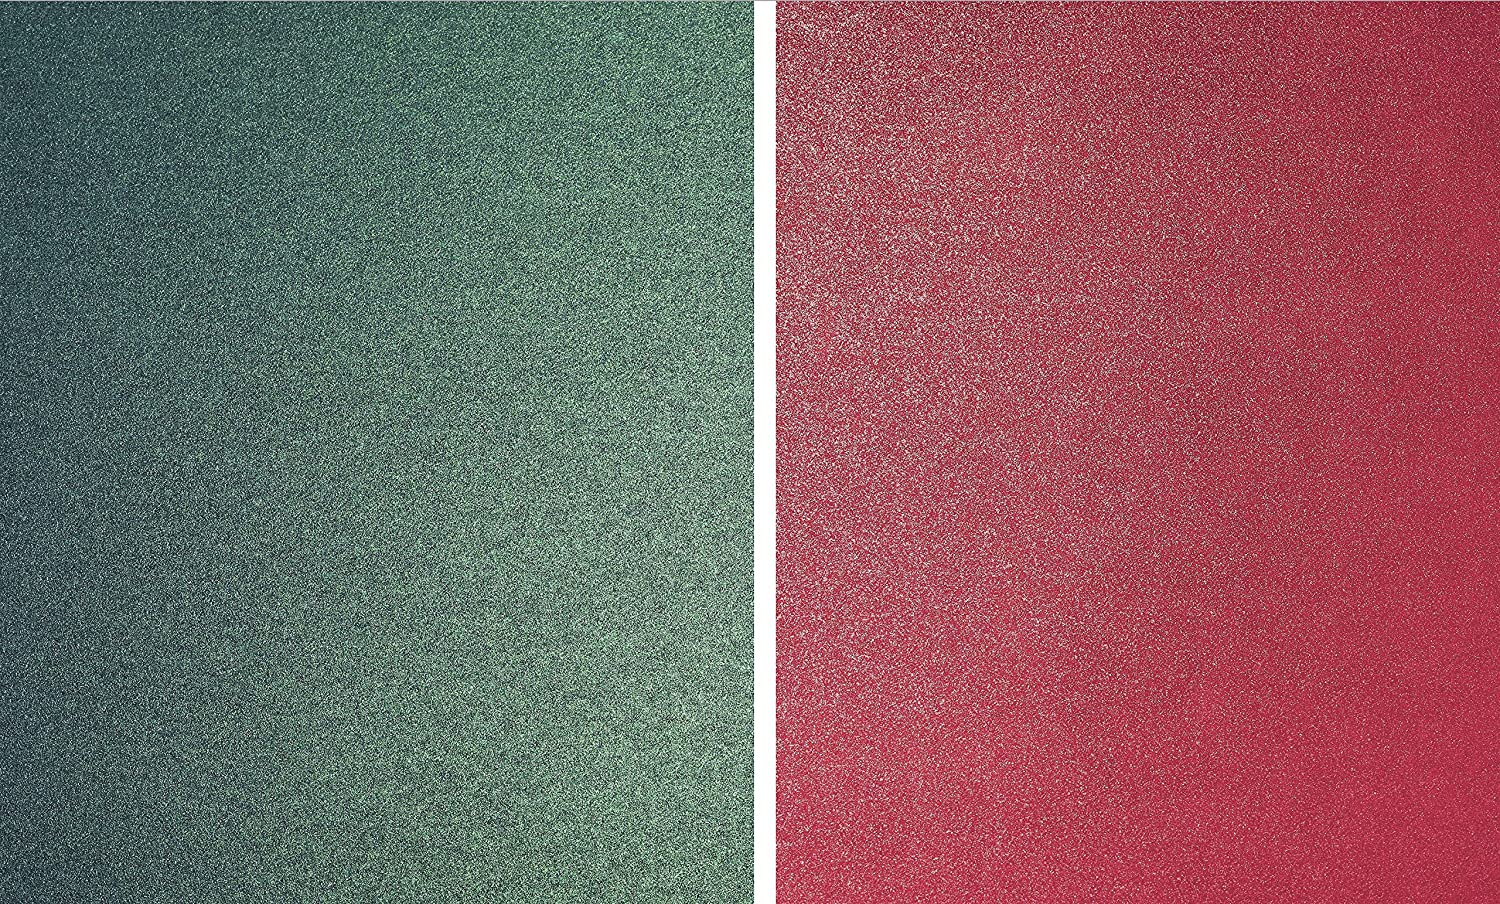 20 x A4 Christmas Paper High Quality 120gsm Pearlescent Shimmer Majestic Red and Green 10 Sheets of Each Double Sided Syntego